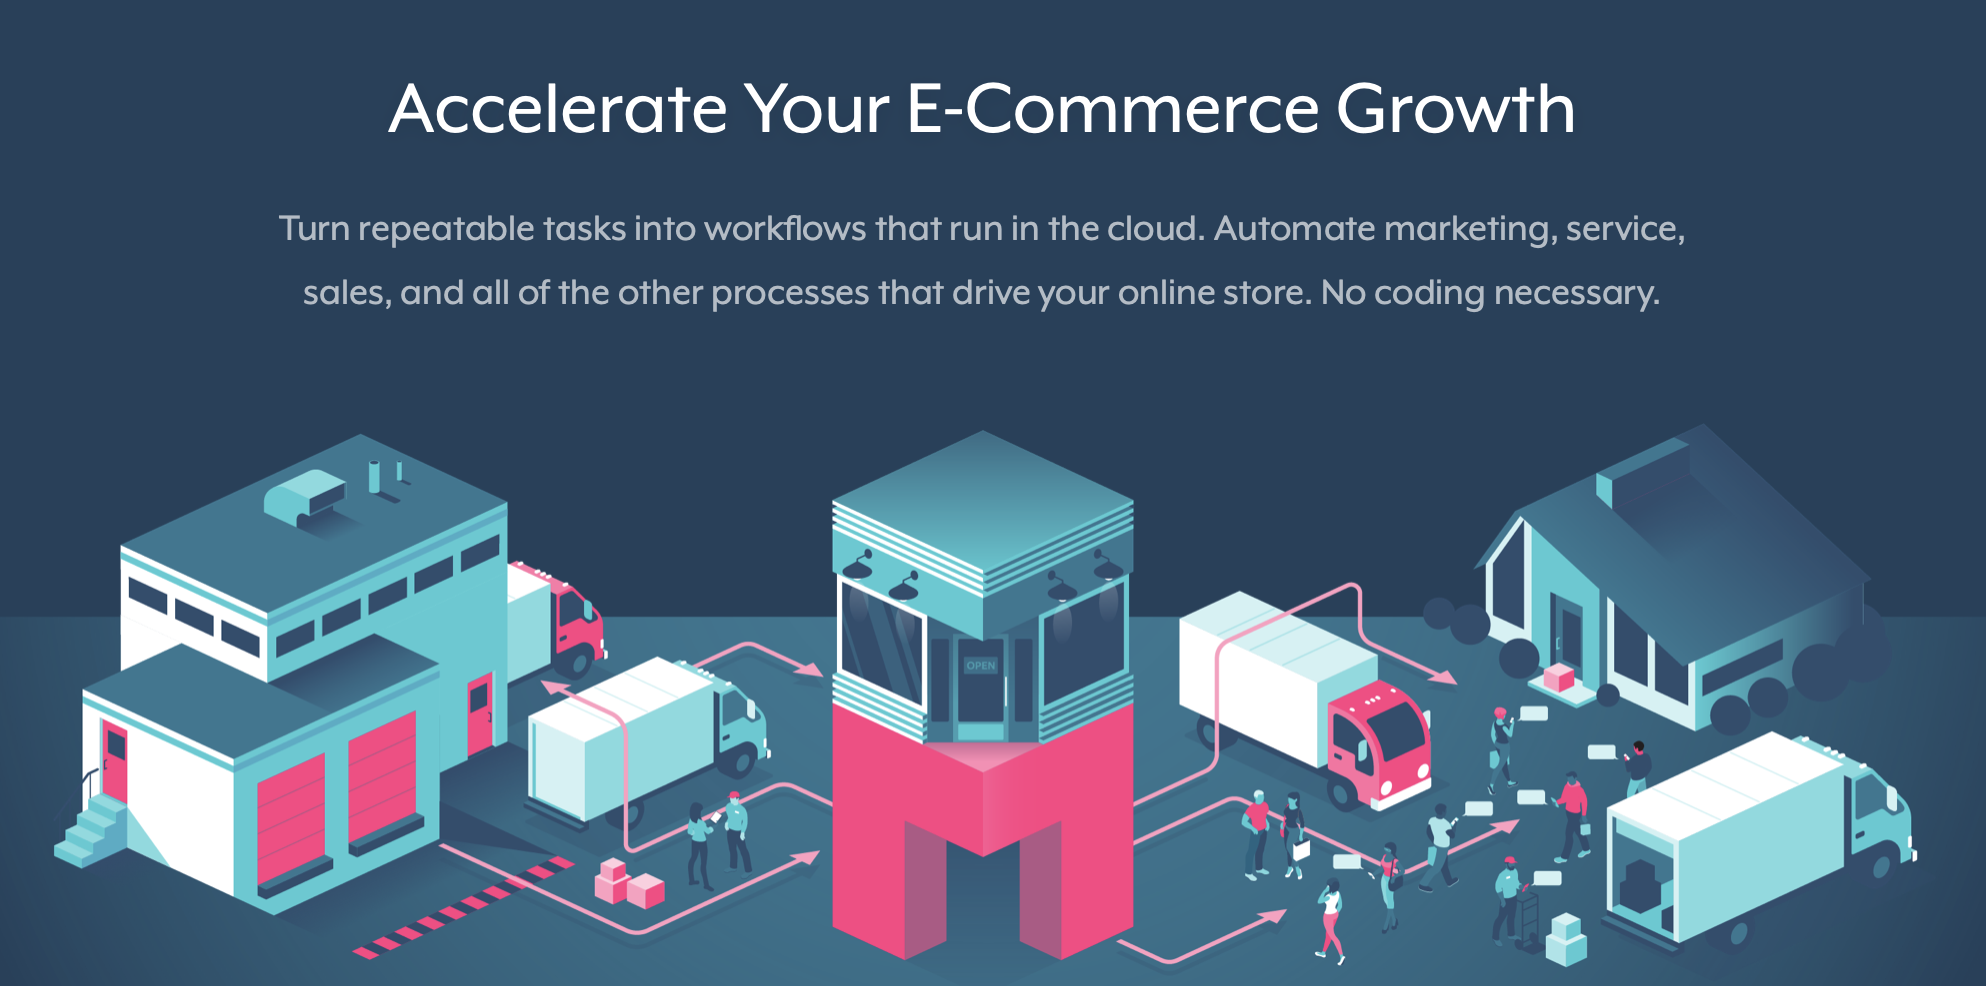 Mesa_Accelerate Your Ecommerce Growth